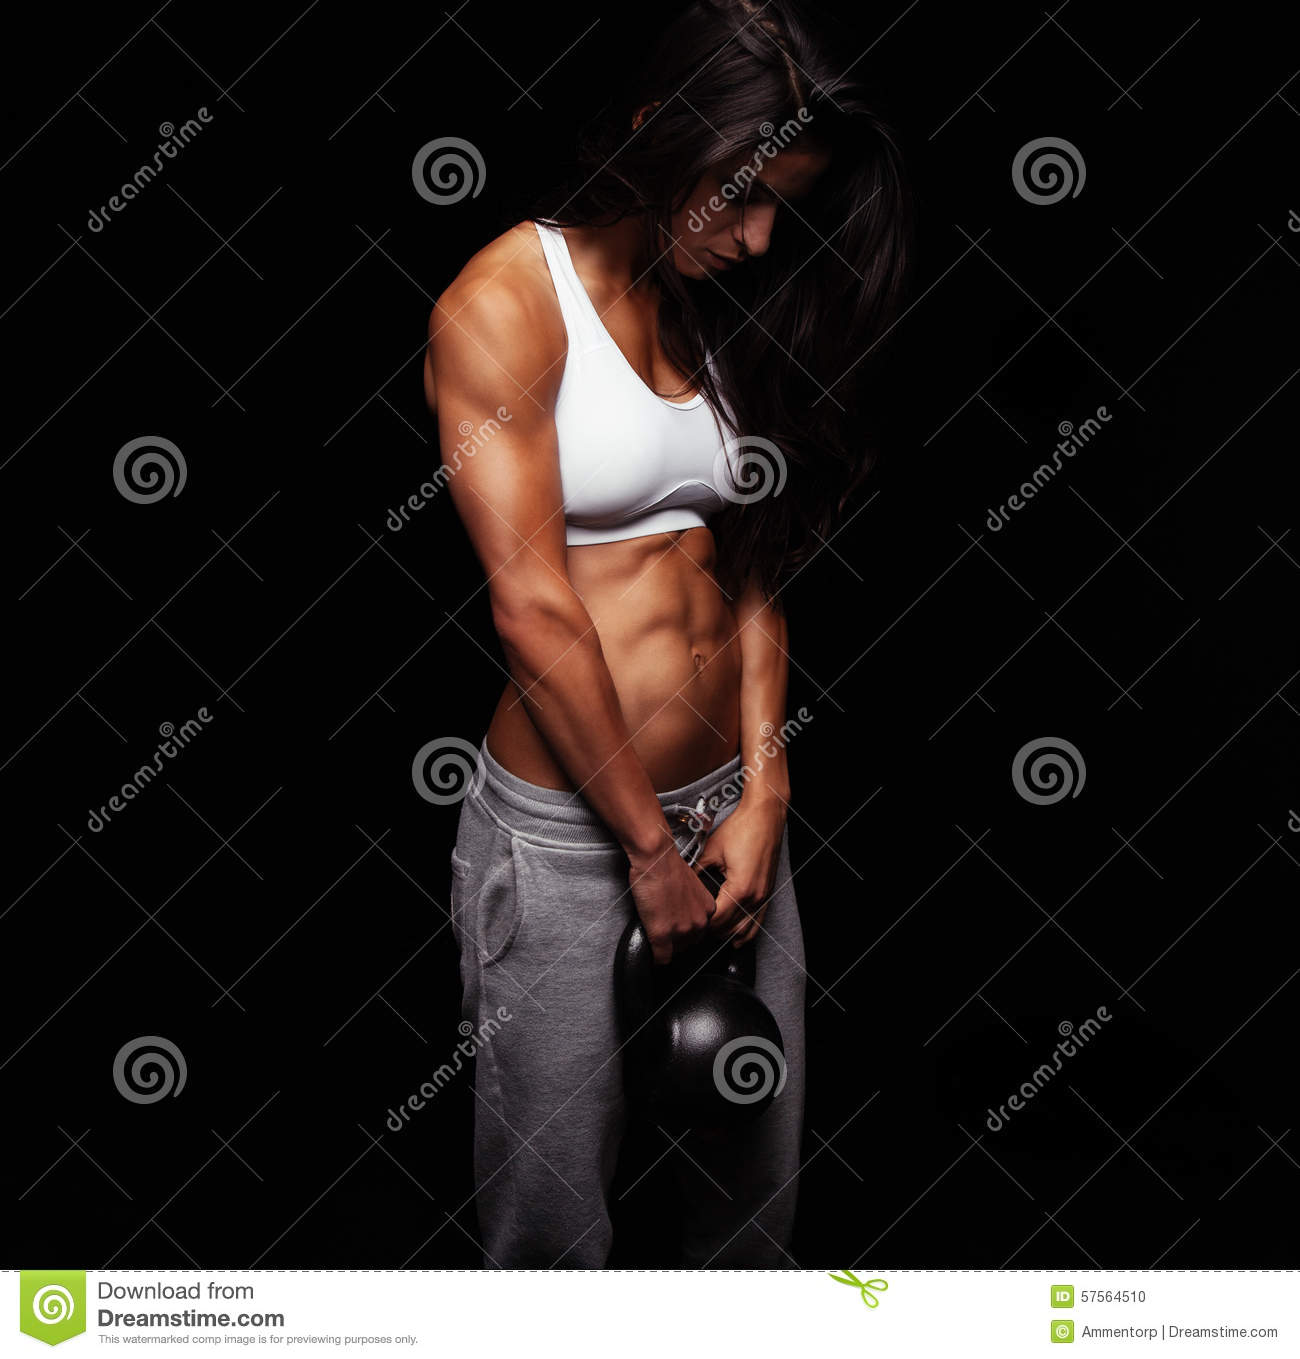 Women S Crossfit Workouts: Young Woman Doing Crossfit Workout Stock Photo